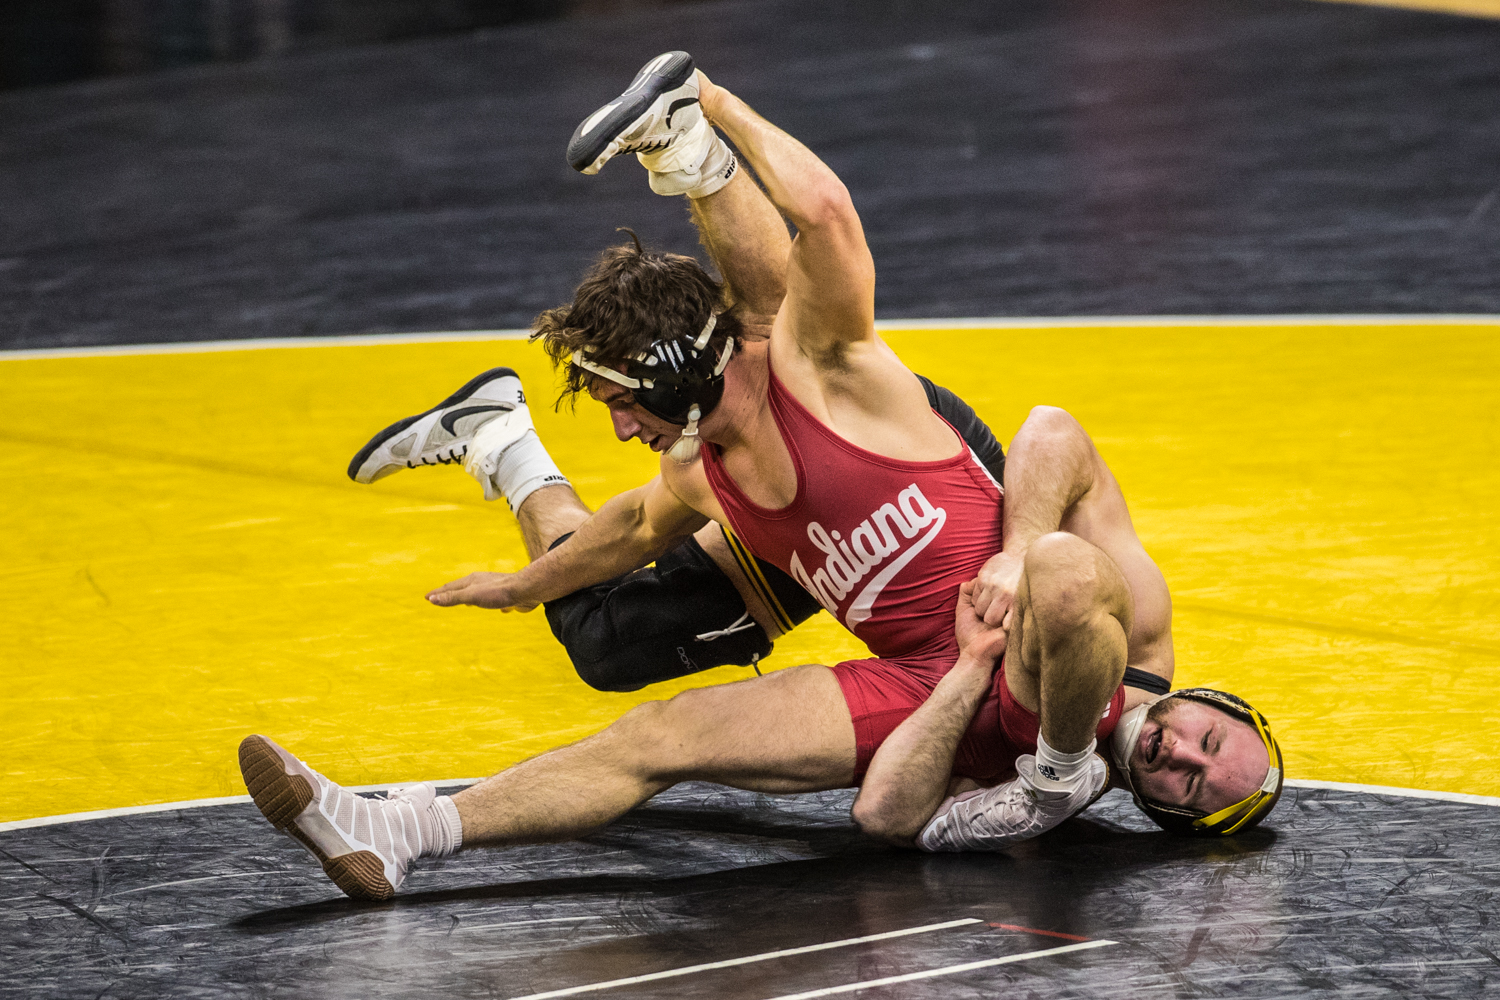 Iowa%27s+No.+2+Alex+Marinelli+wrestles+Indiana%27s+Dillon+Hoey+at+165lb+during+a+wrestling+match+between+Iowa+and+Indiana+at+Carver-Hawkeye+Arena+on+Friday%2C+February+15%2C+2019.+The+Hawkeyes%2C+celebrating+senior+night%2C+defeated+the+Hoosiers+37-9.